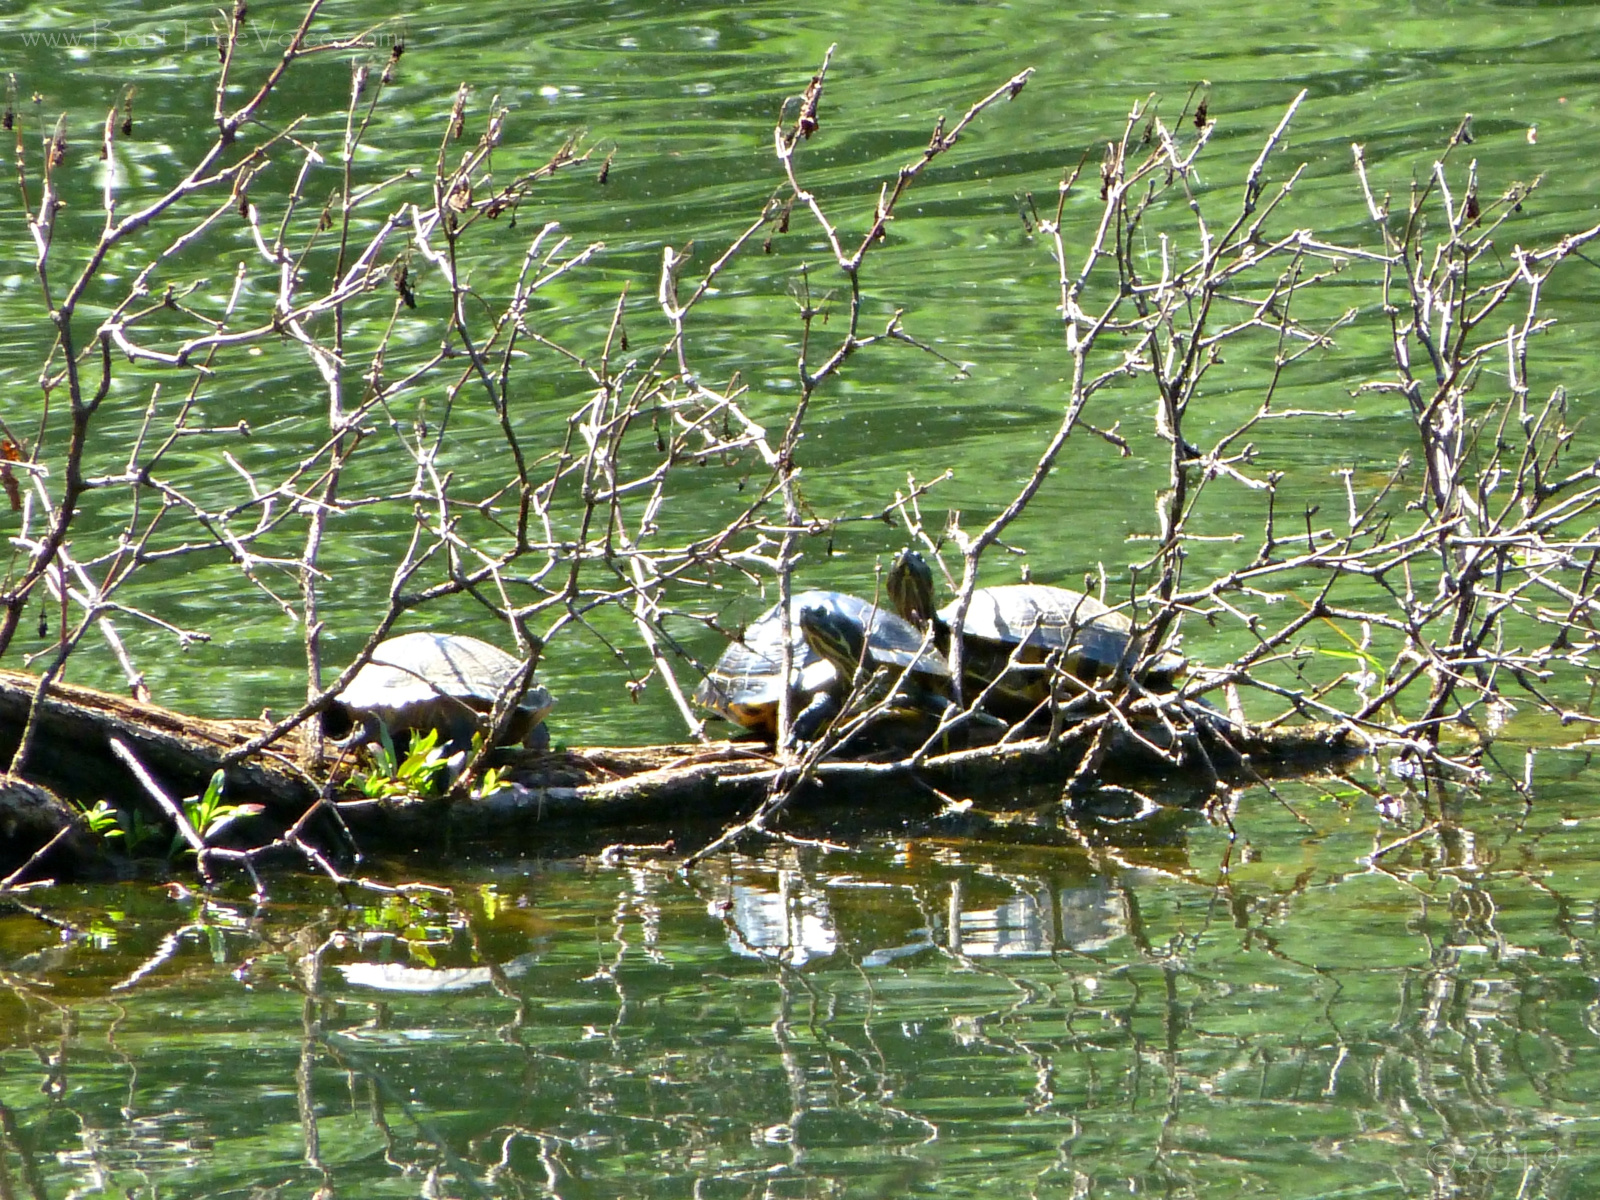 June 17, 2019 - Turtles, pond on Hole 7 in Bent Tree